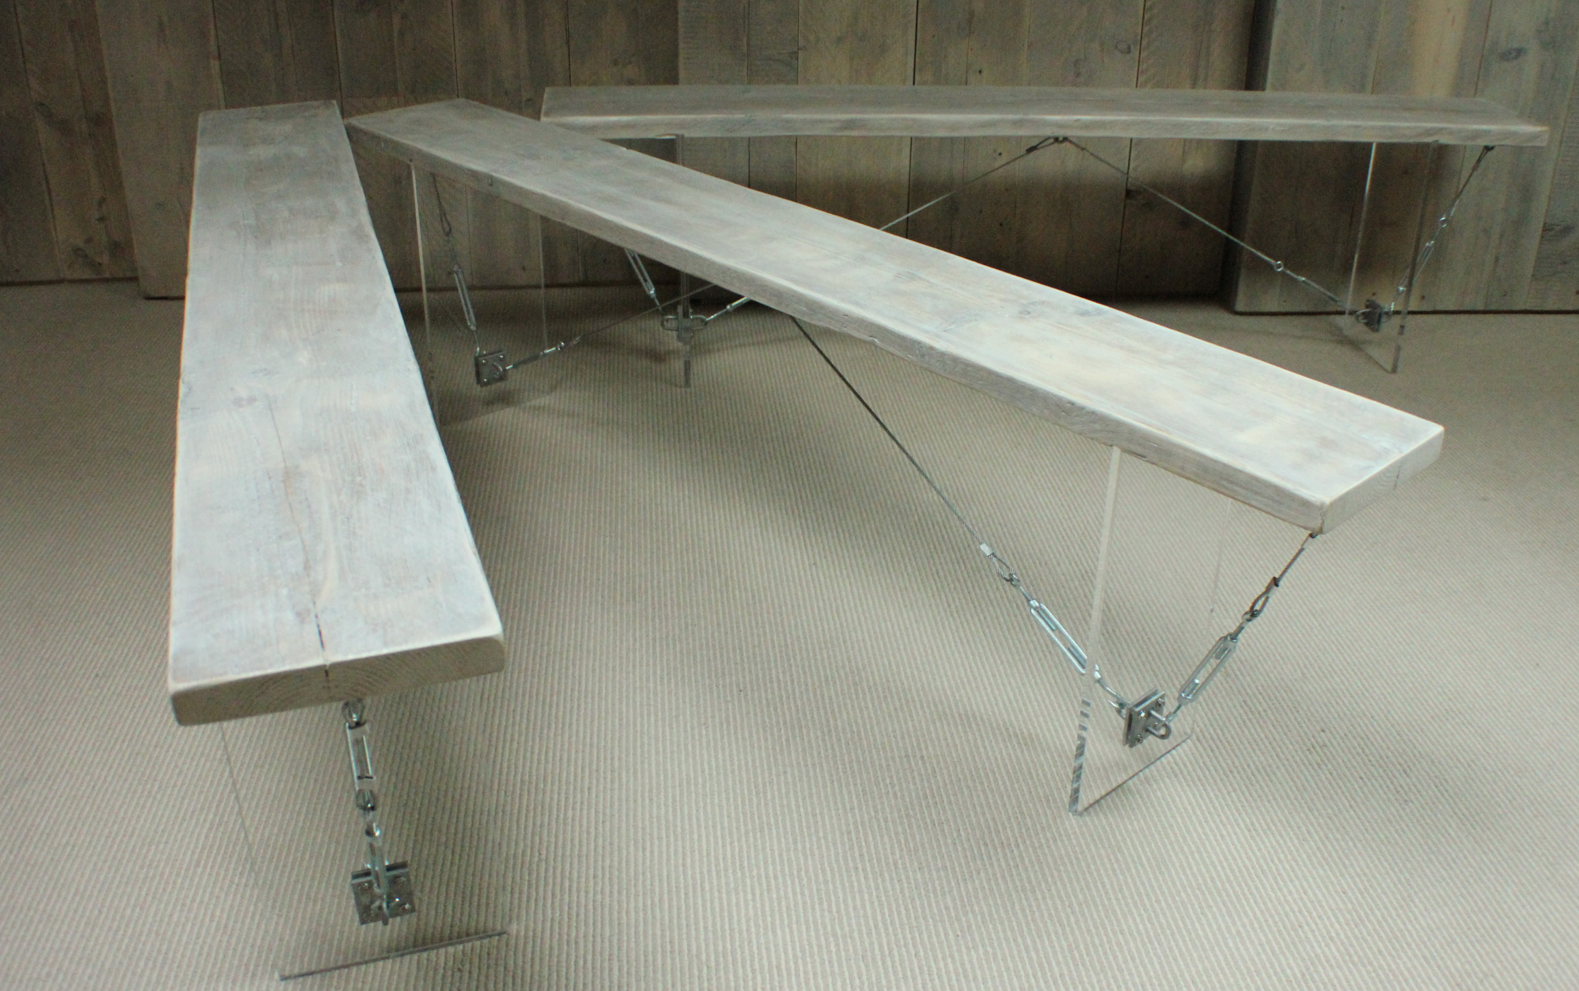 John Osborn's scaffold plank table comes apart and folds flat for easy storage